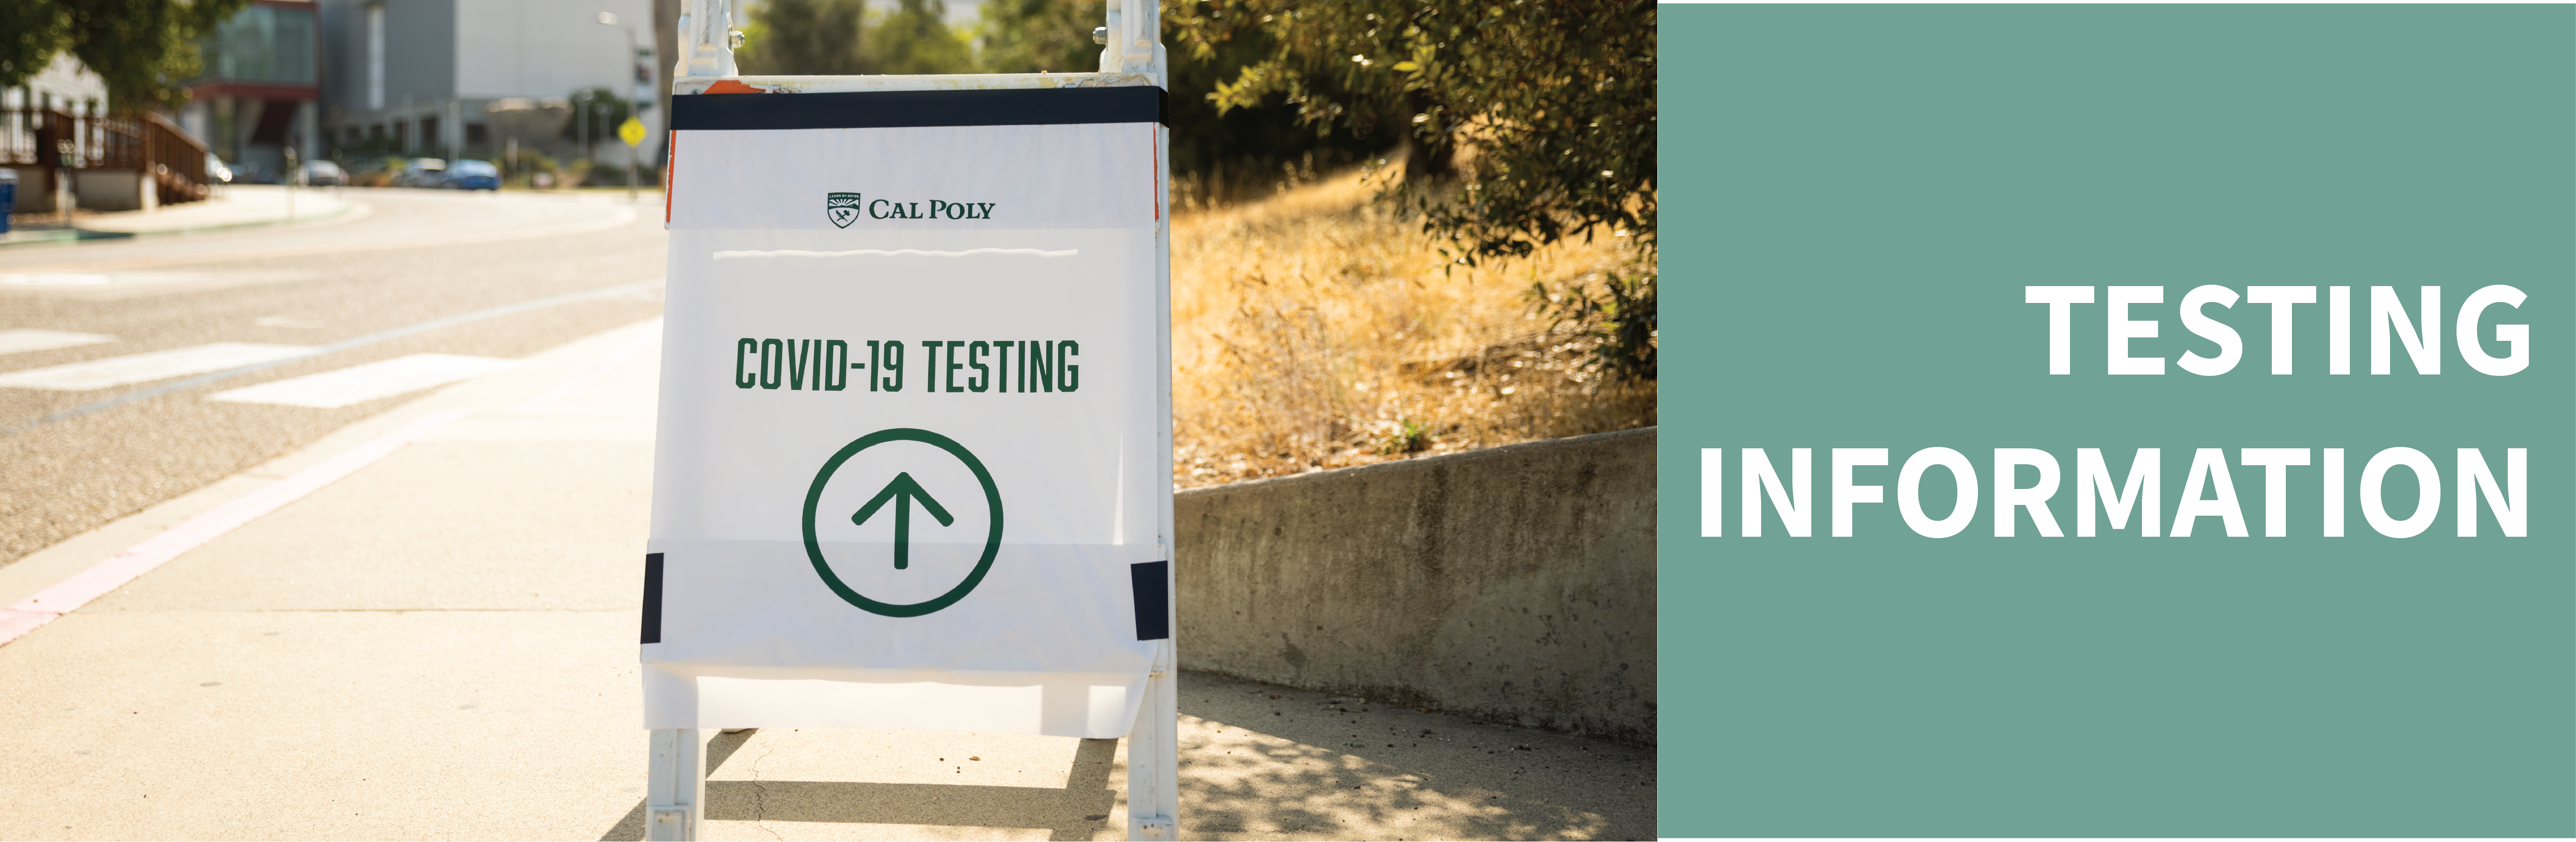 Testing Information and Sandwich board with text that says Covid Testing